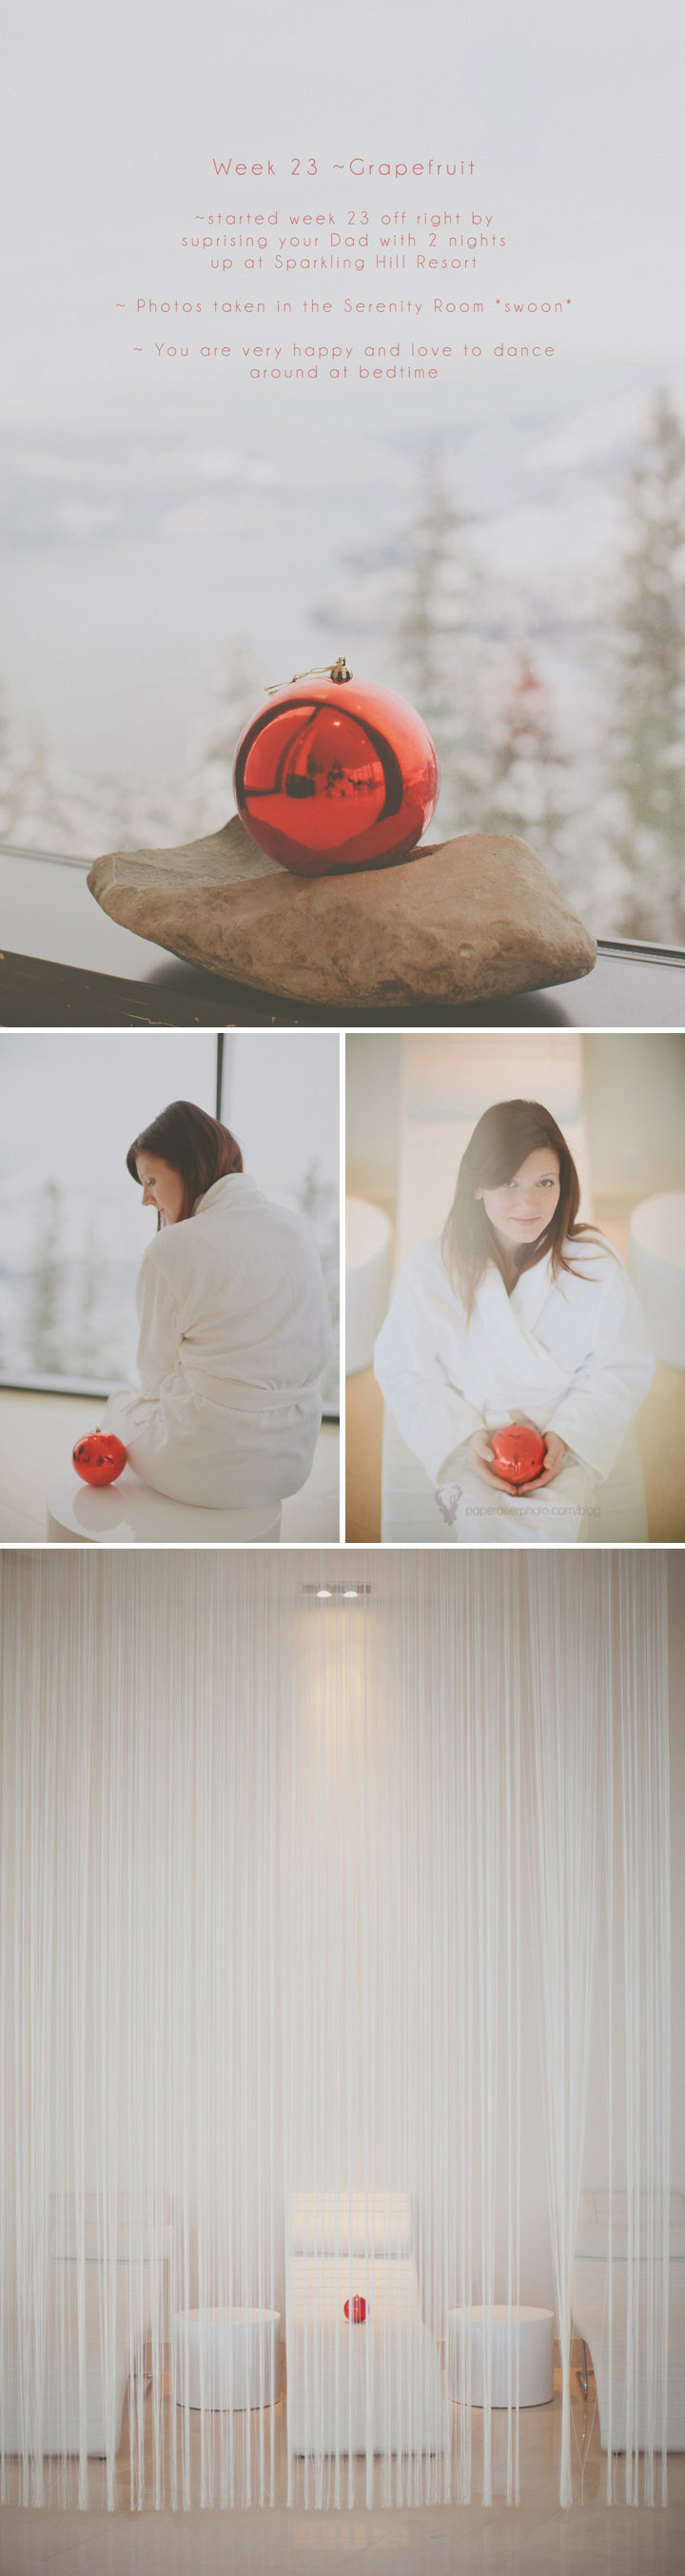 Weekly Pregnancy Photo Journal - ©The Paper Deer Photographer